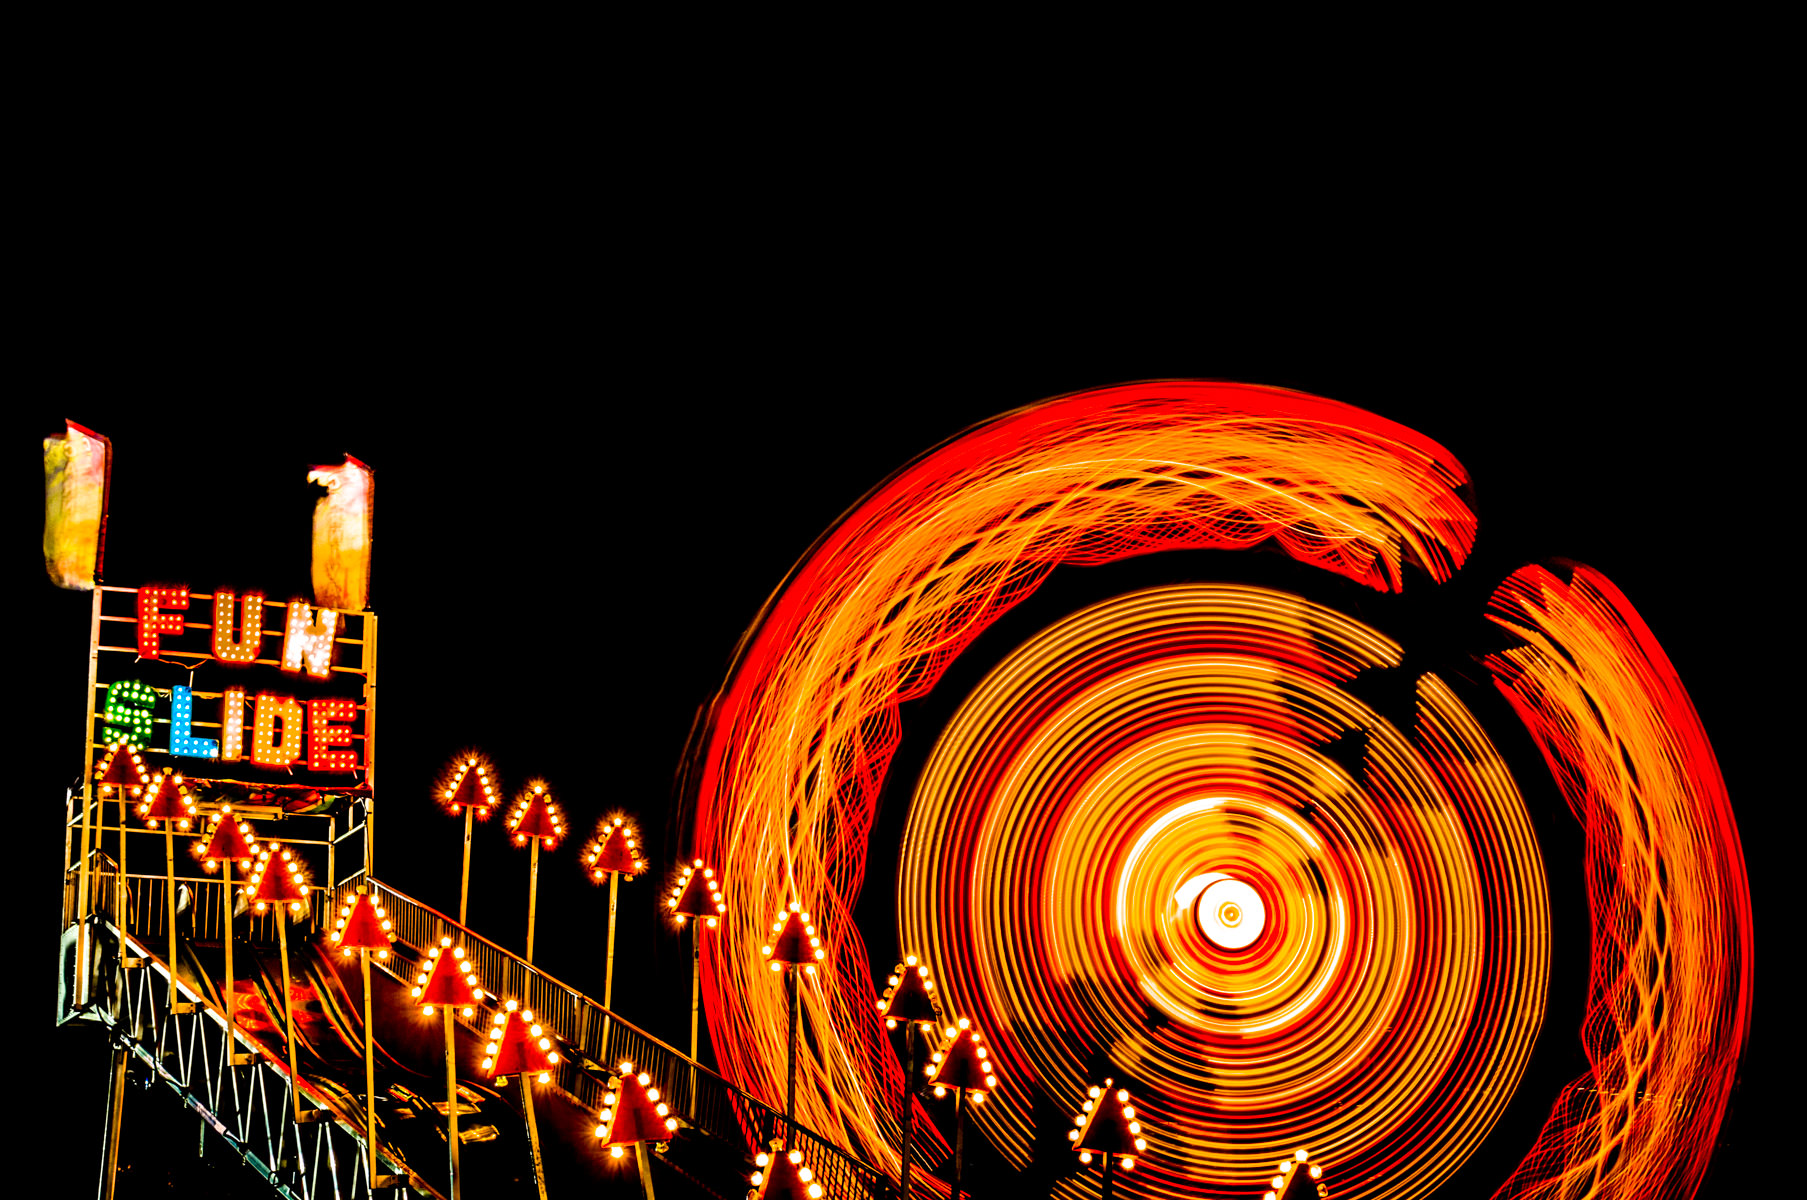 Another long exposure shot from the carnival at Addison Oktoberfest, Addison, Texas.